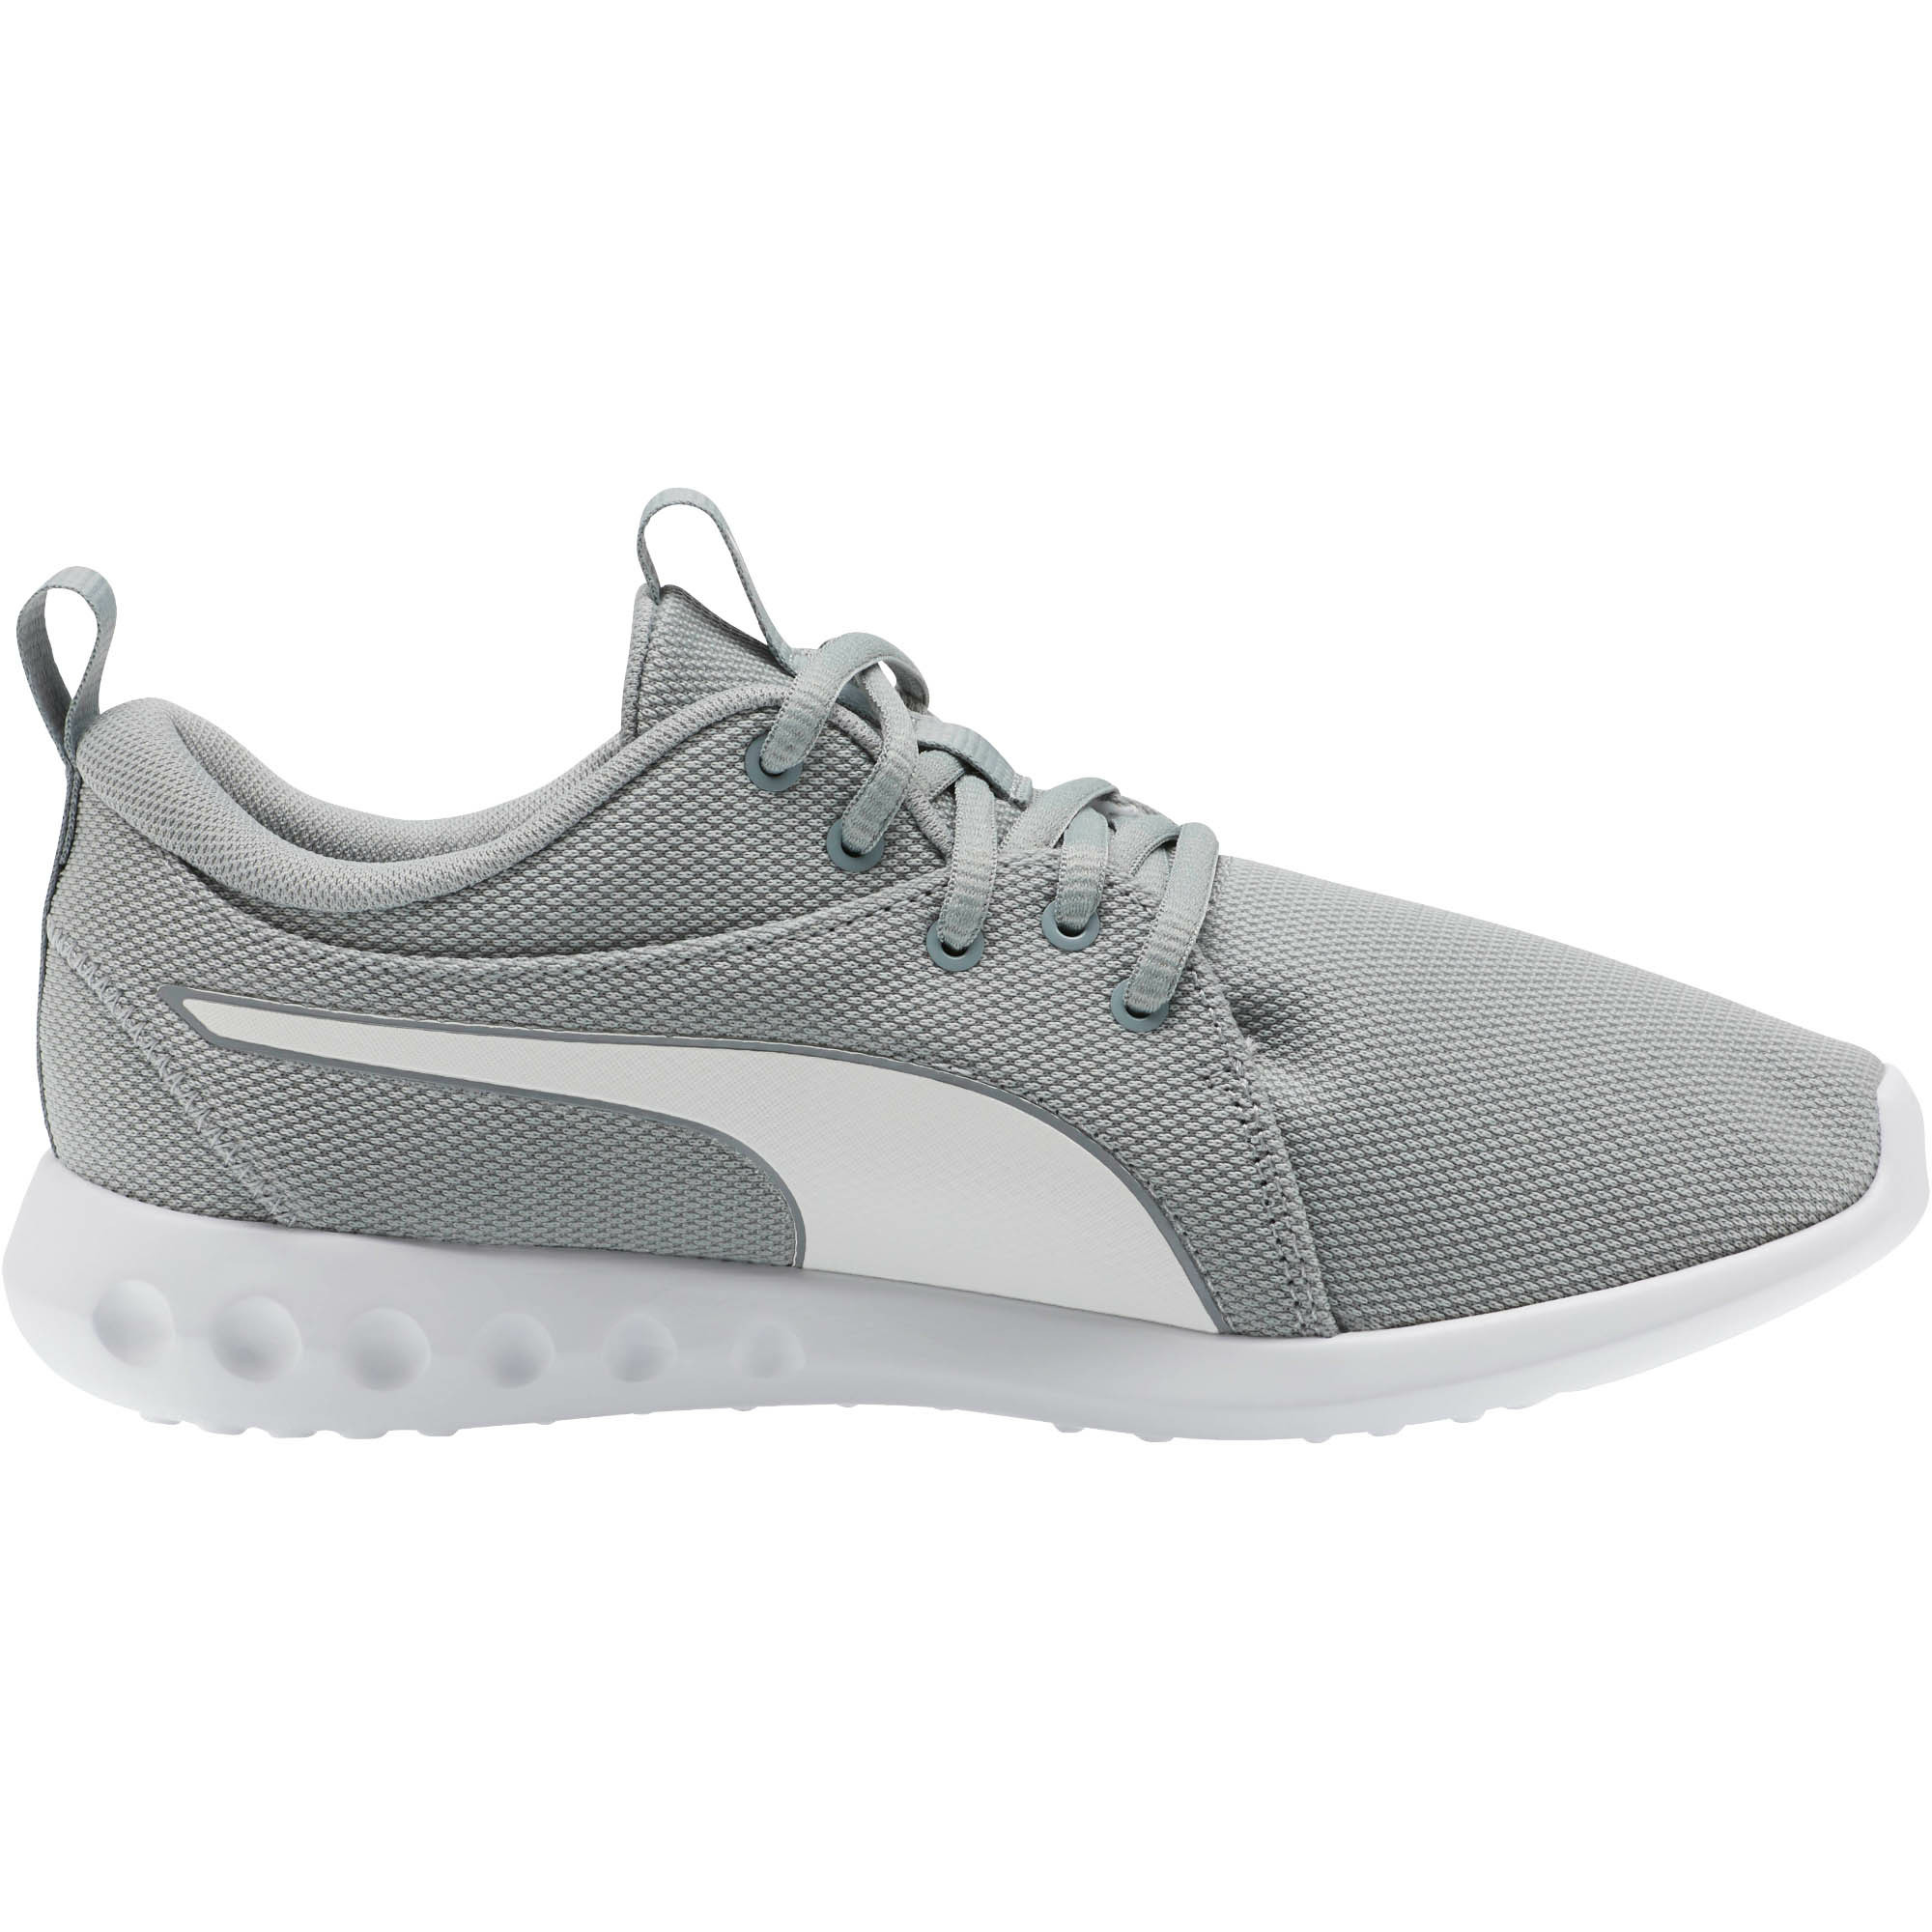 PUMA-Women-039-s-Carson-2-Cosmo-Running-Shoes thumbnail 10